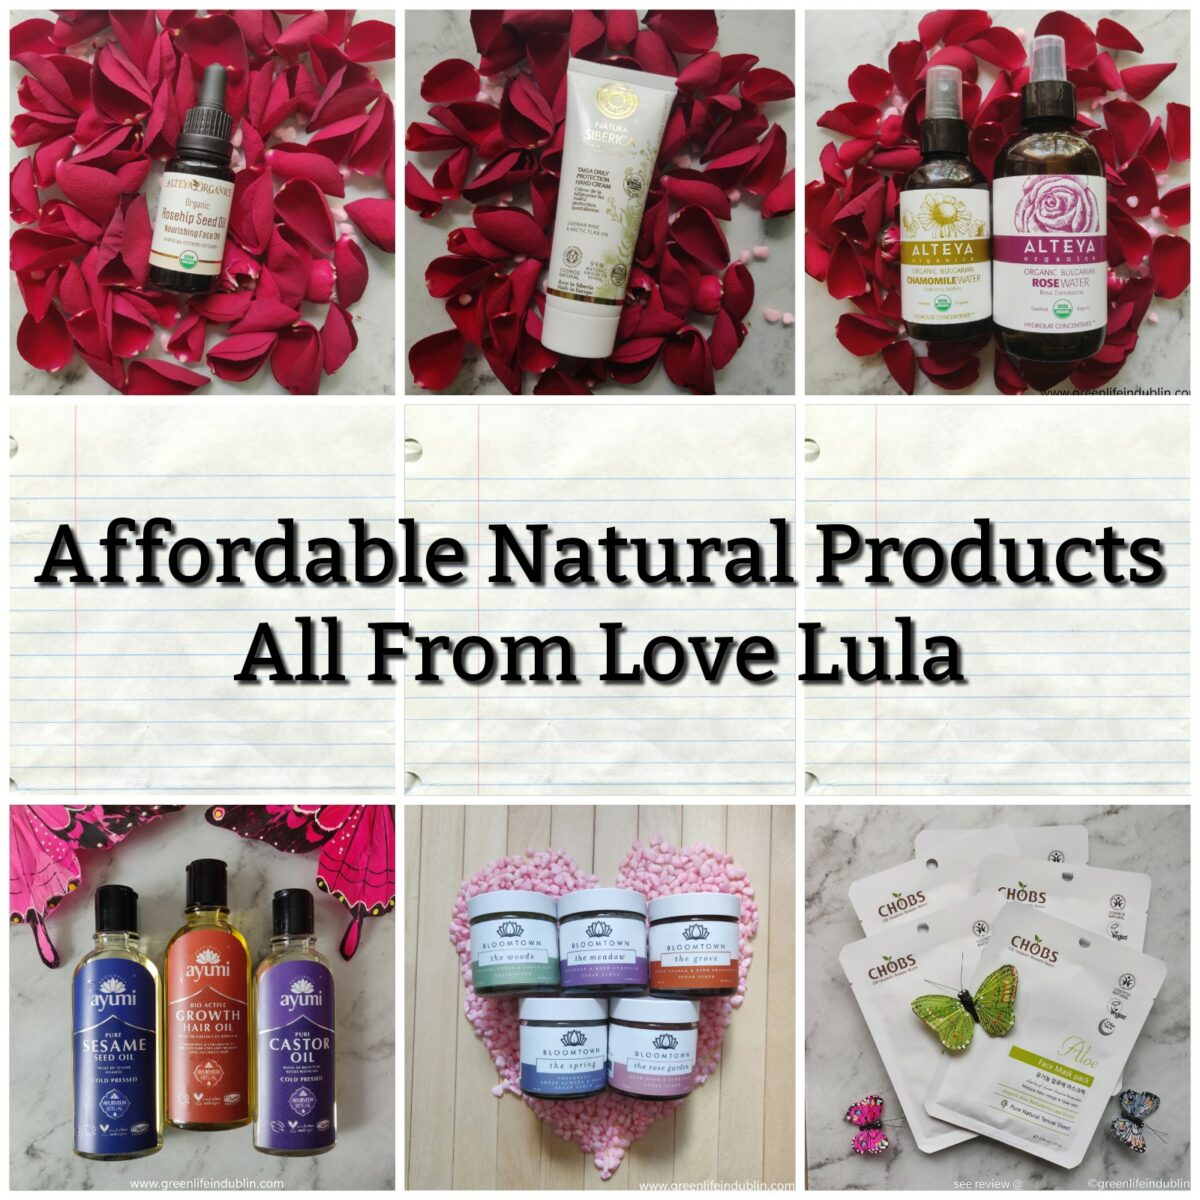 Affordable Natural Products at Love Lula